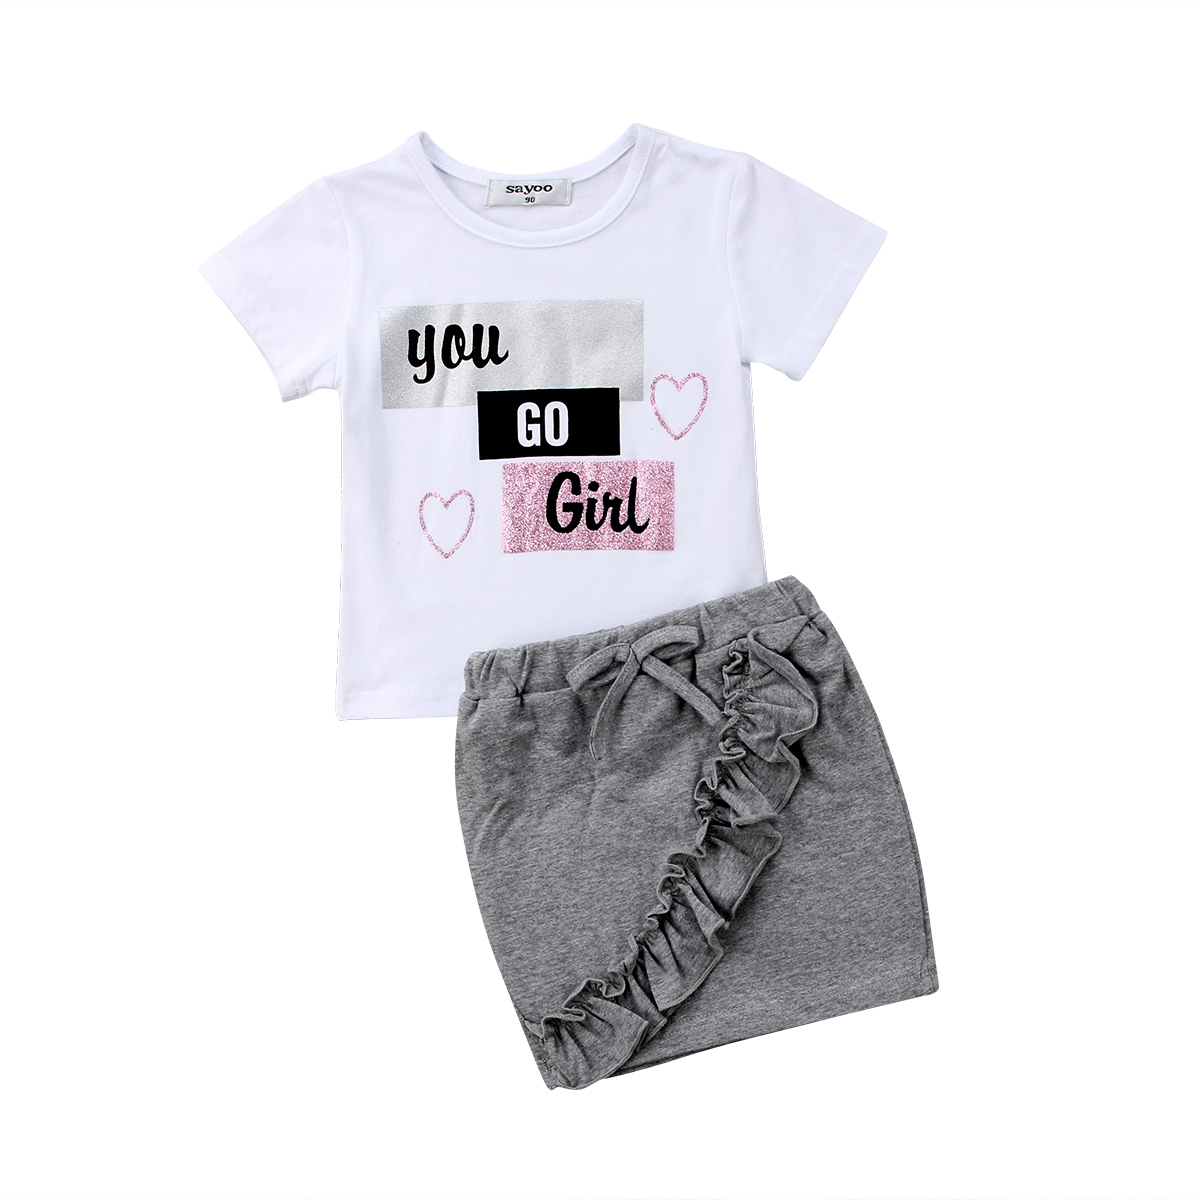 2019 New Summer Autumn Kid Baby Girls Cotton Tops T-shirt Short Skirts Dress Outfit Clothes Set